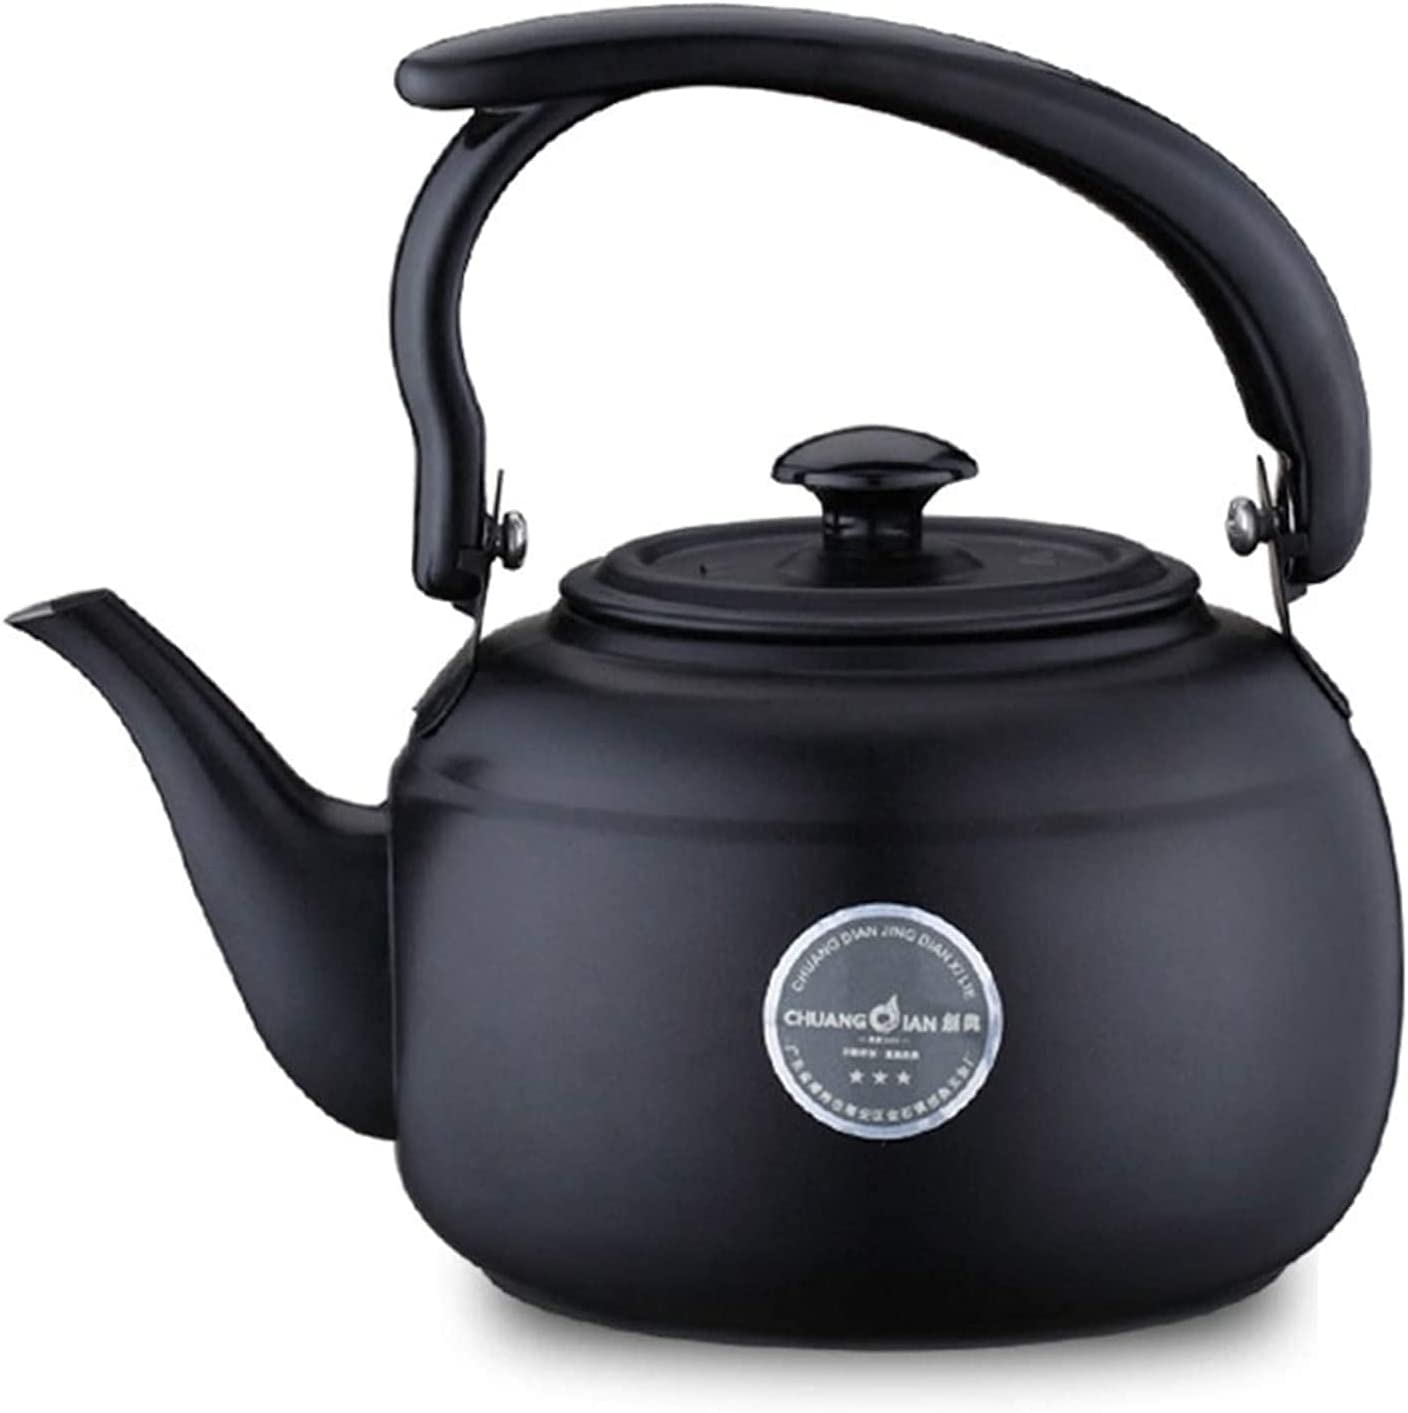 beeyuk Stainless steel teapot is the ergonomic Denver Mall Spasm price line top in with